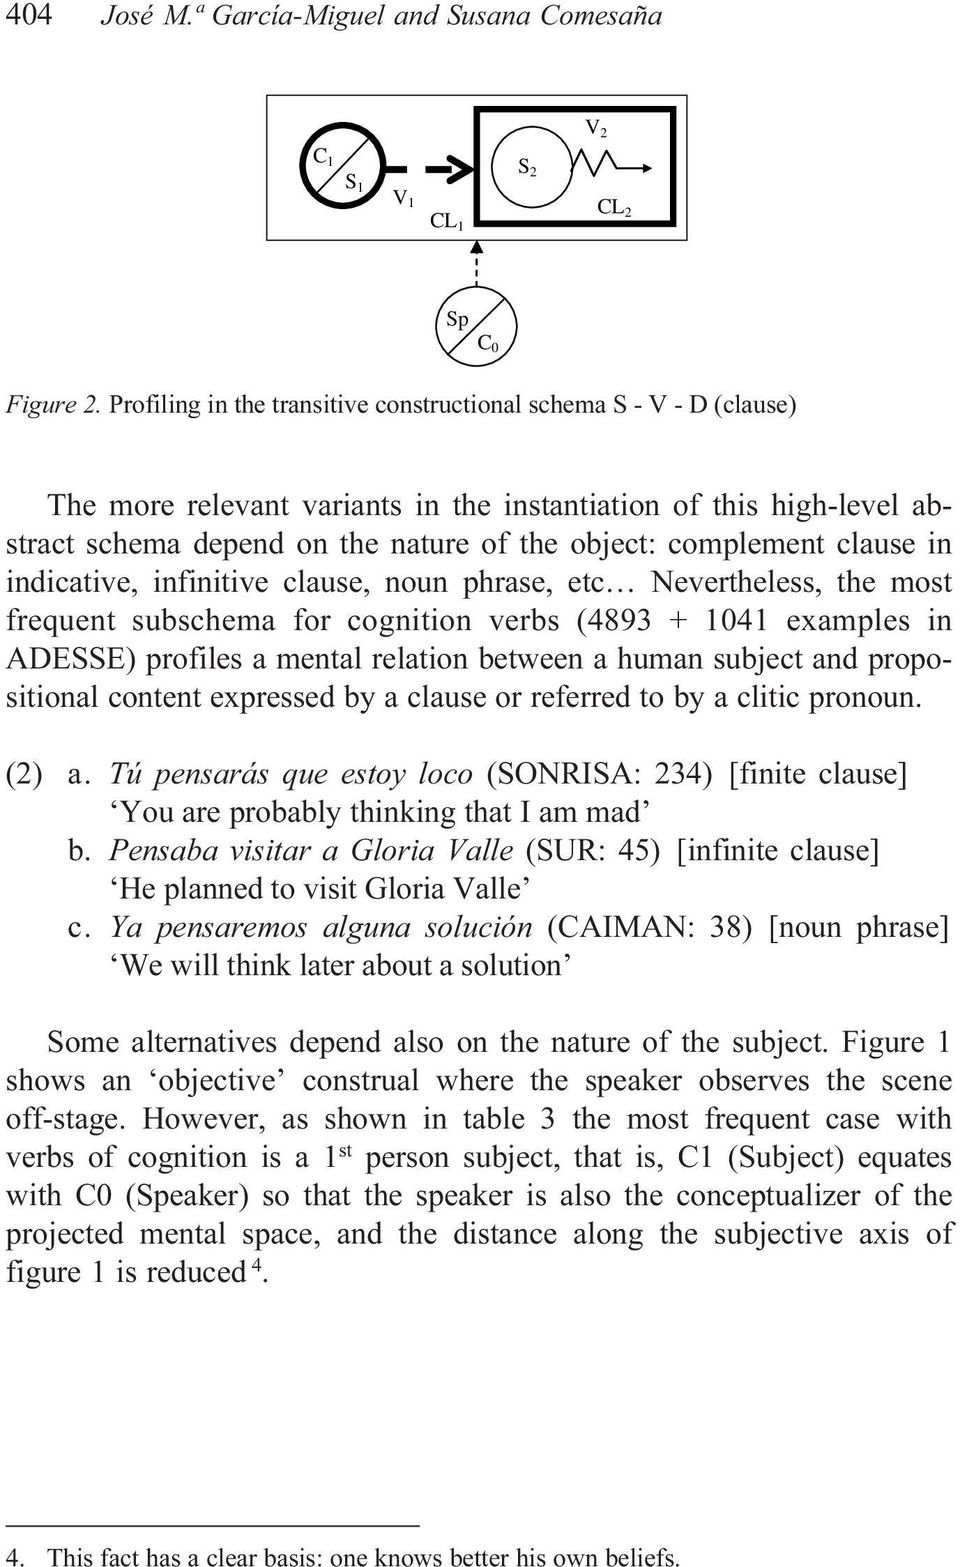 clause in indicative, infinitive clause, noun phrase, etc Nevertheless, the most frequent subschema for cognition verbs (4893 + 1041 examples in ADESSE) profiles a mental relation between a human